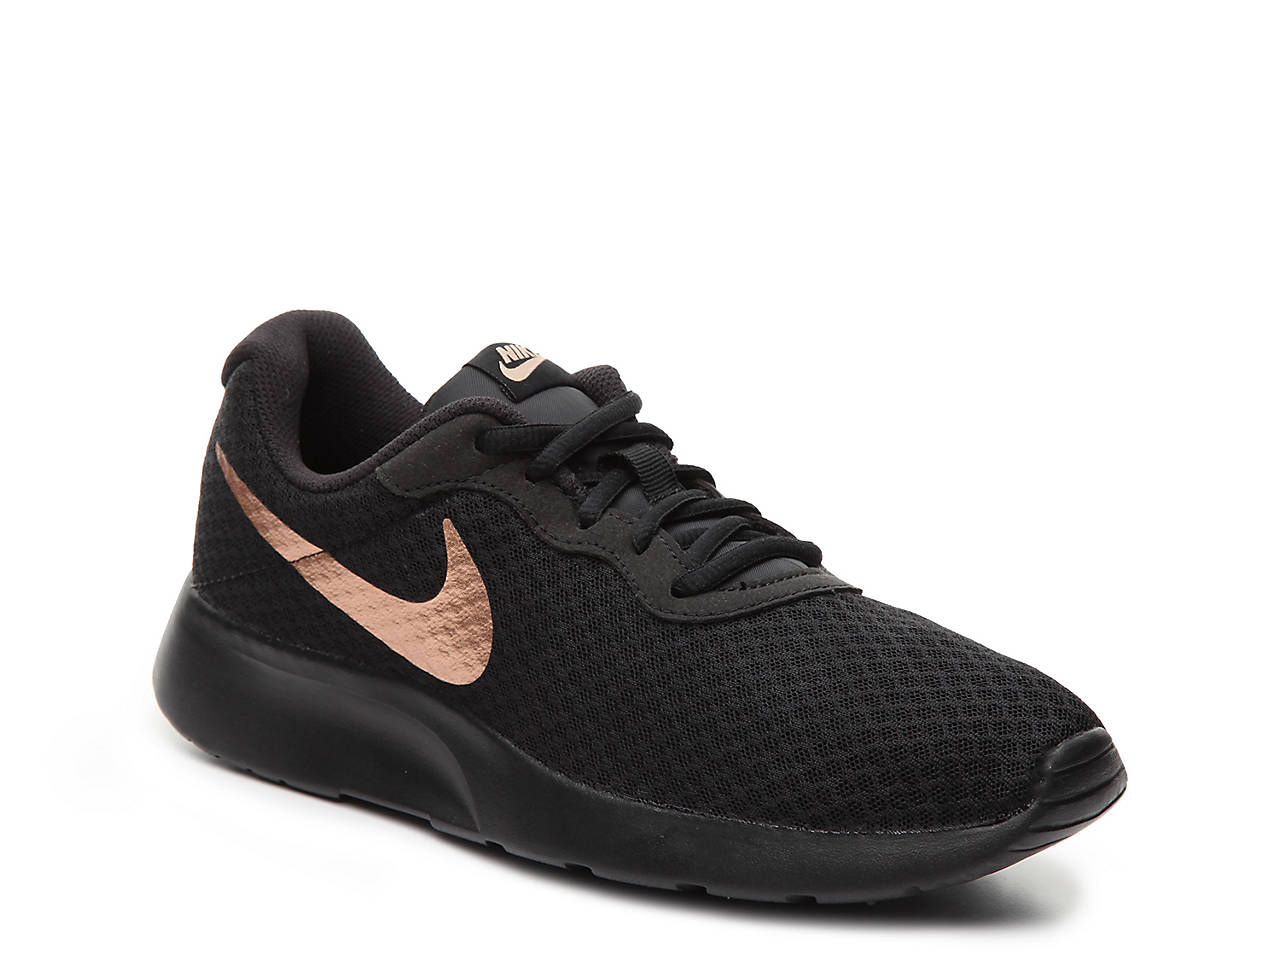 96829057530e Nike Tanjun Sneaker - Women s Women s Shoes